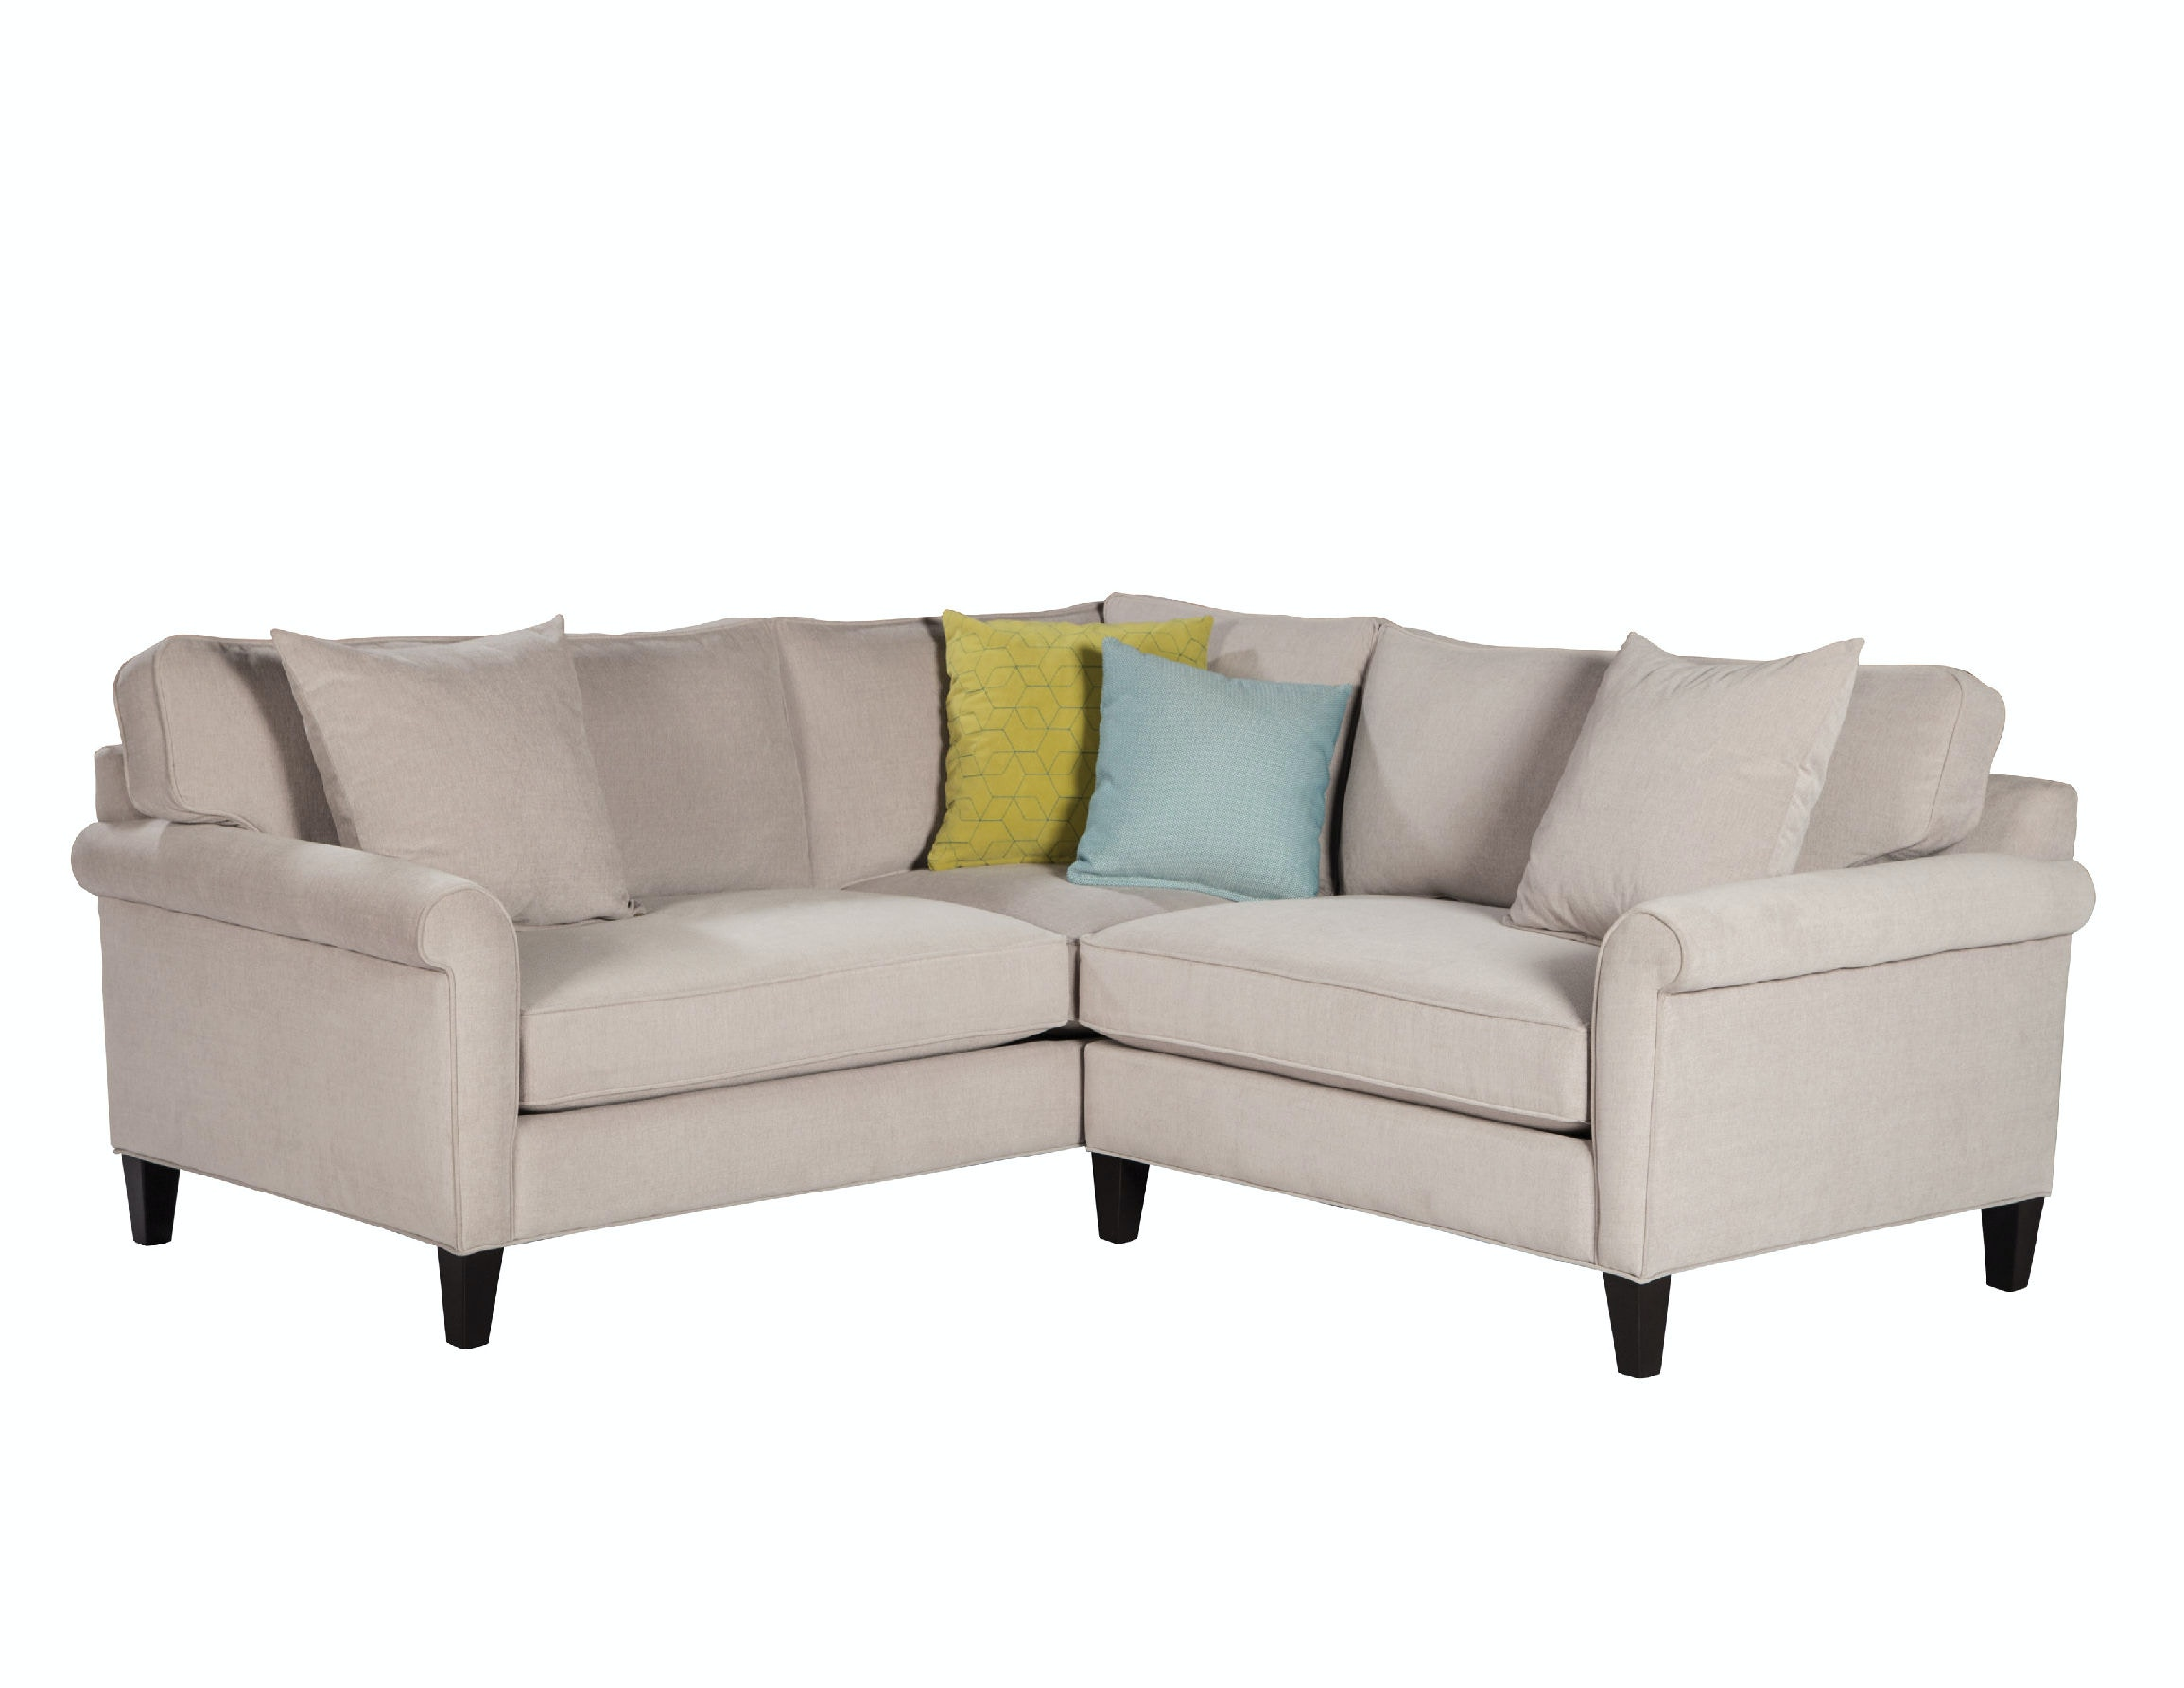 102-Sectional  sc 1 st  Carol House Furniture : jonathan louis bradford sectional - Sectionals, Sofas & Couches